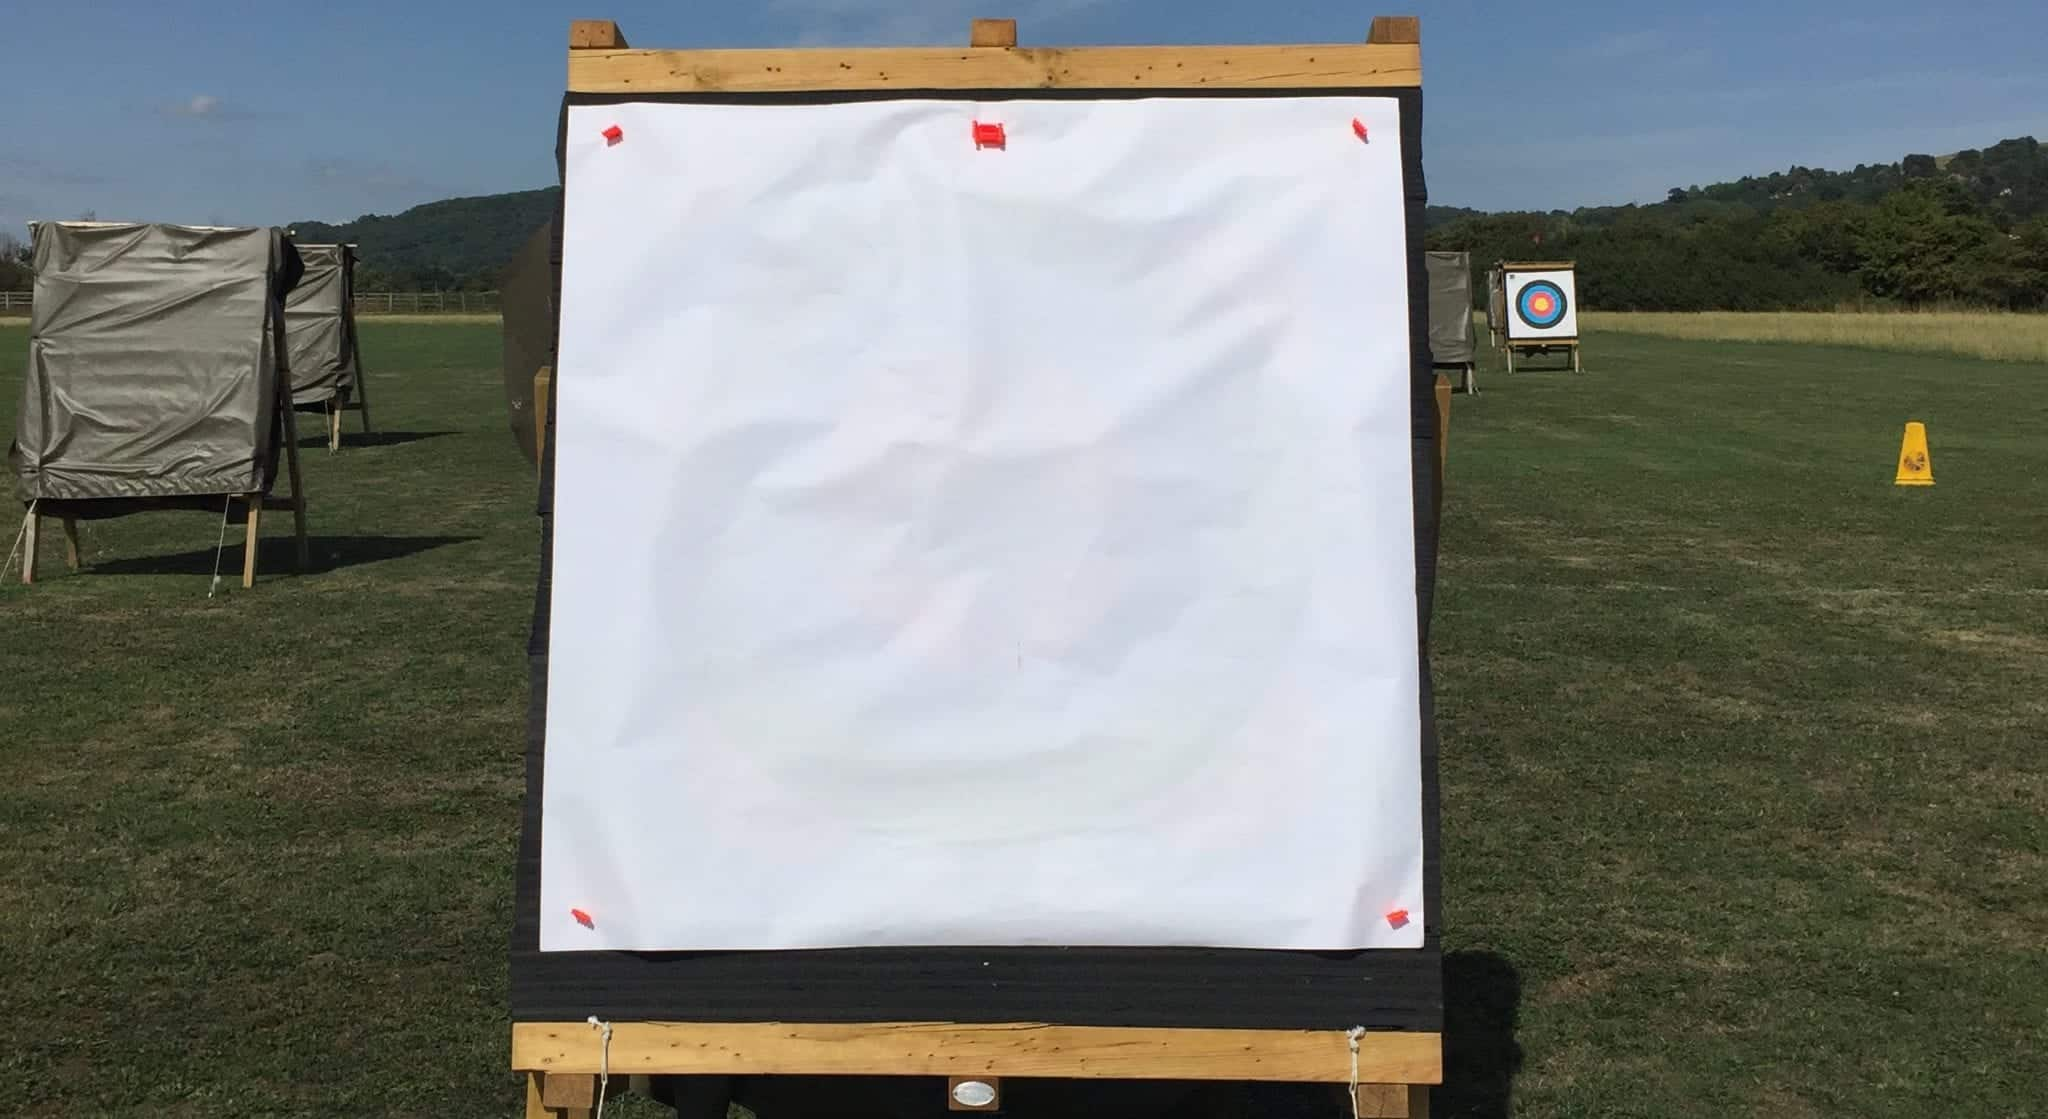 Archery target face set-up to see tuning and arrow flight